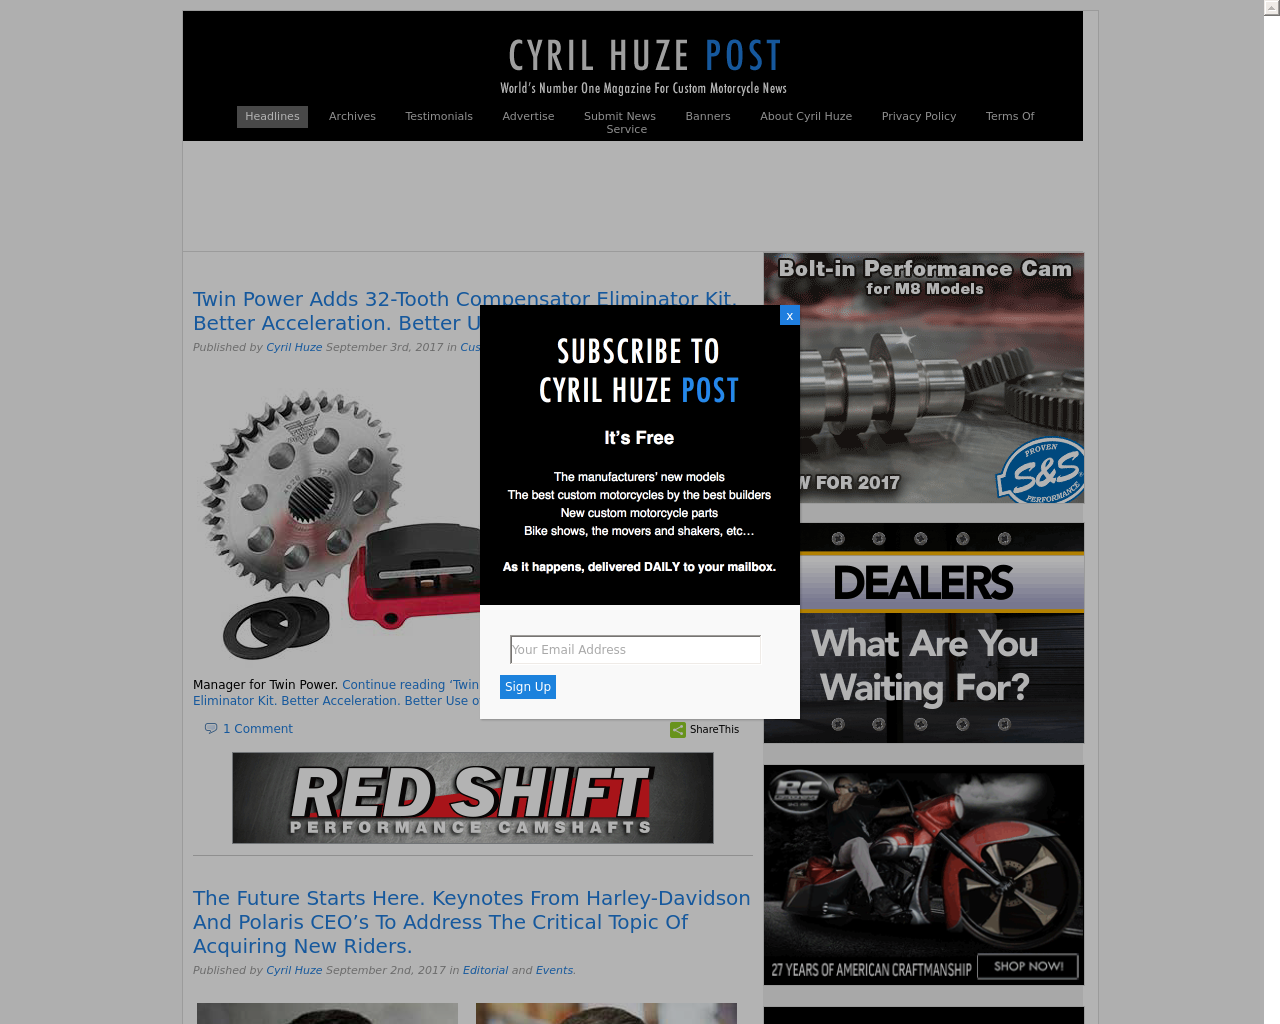 Cyril-Huze-Post-Advertising-Reviews-Pricing